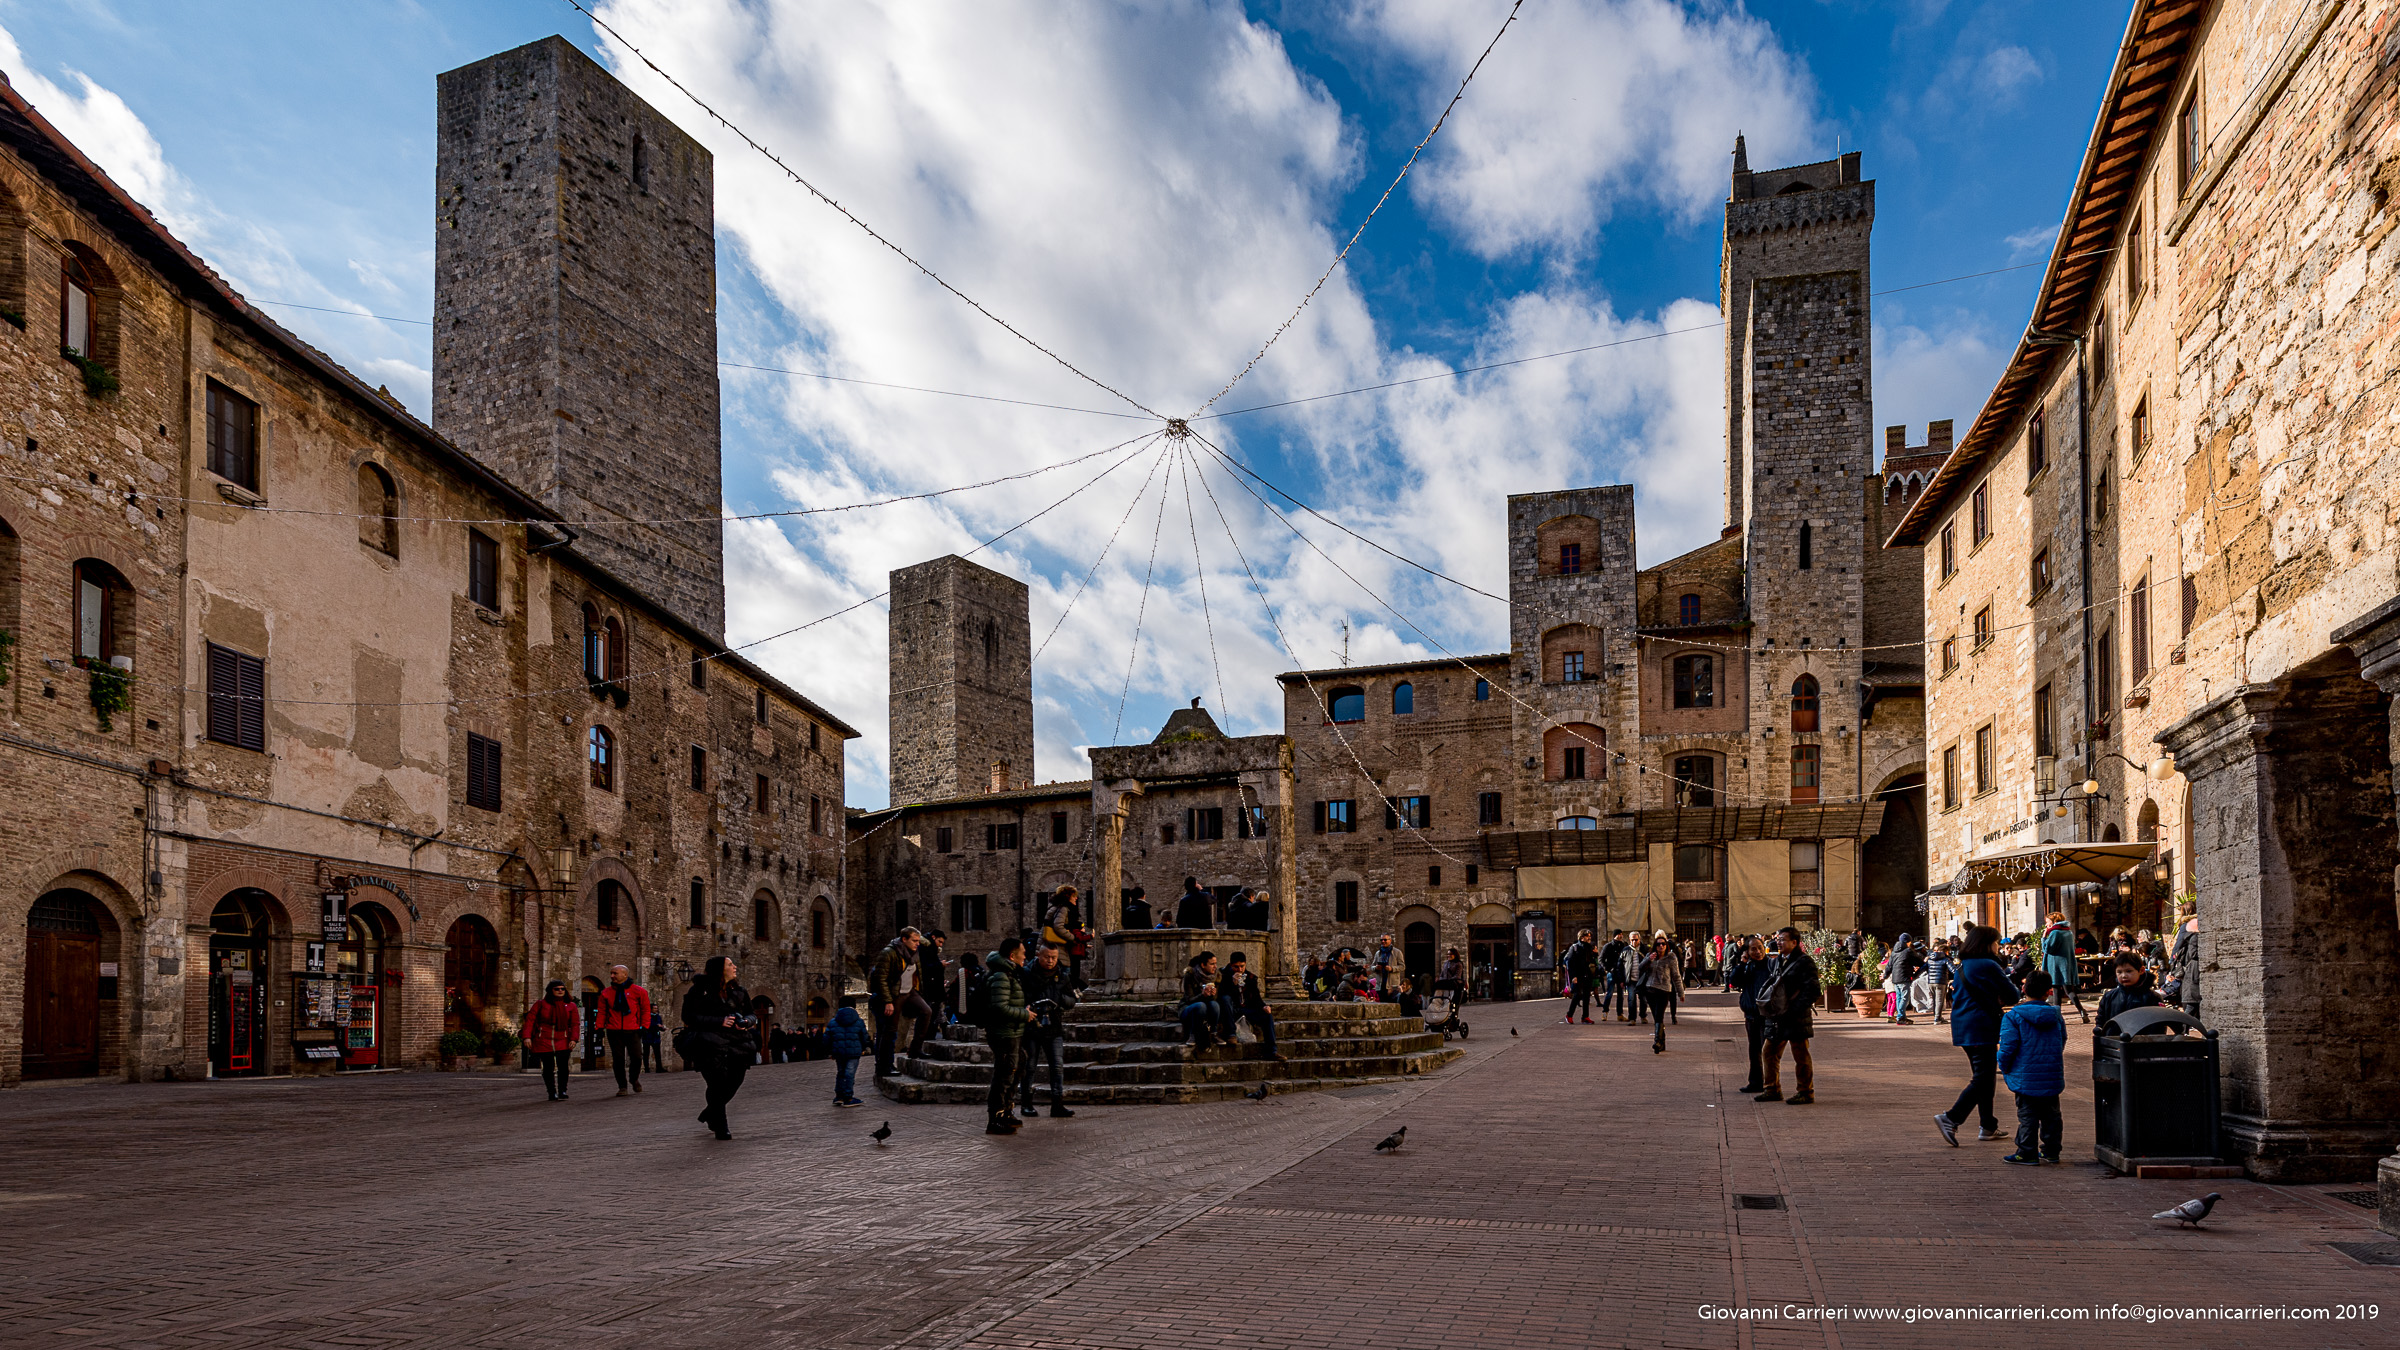 Photographs of San Gimignano